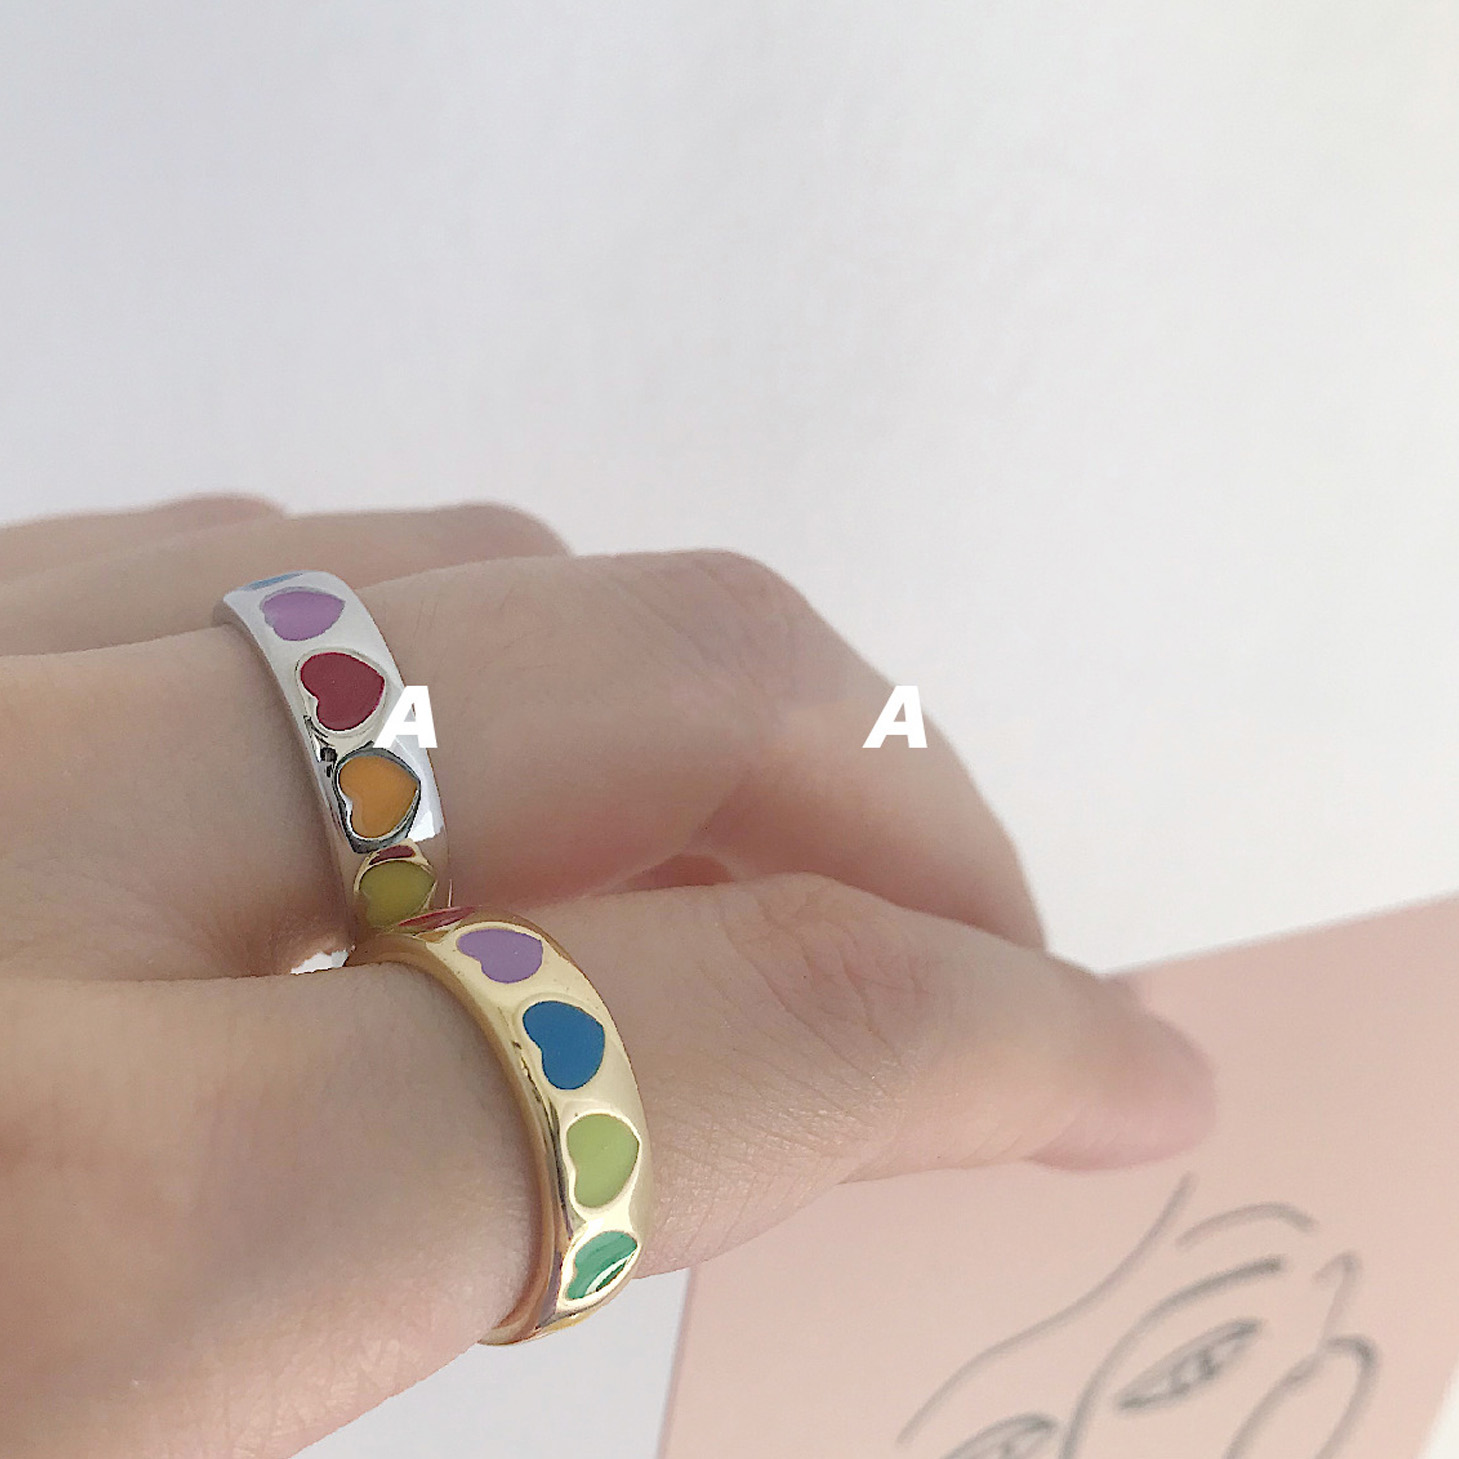 2021 Korea Adjustable Rings Cute Colorful Heart Rainbow Rings kpop Simple Ins Fashion Jewelry for Women Student Gifts Aesthetic